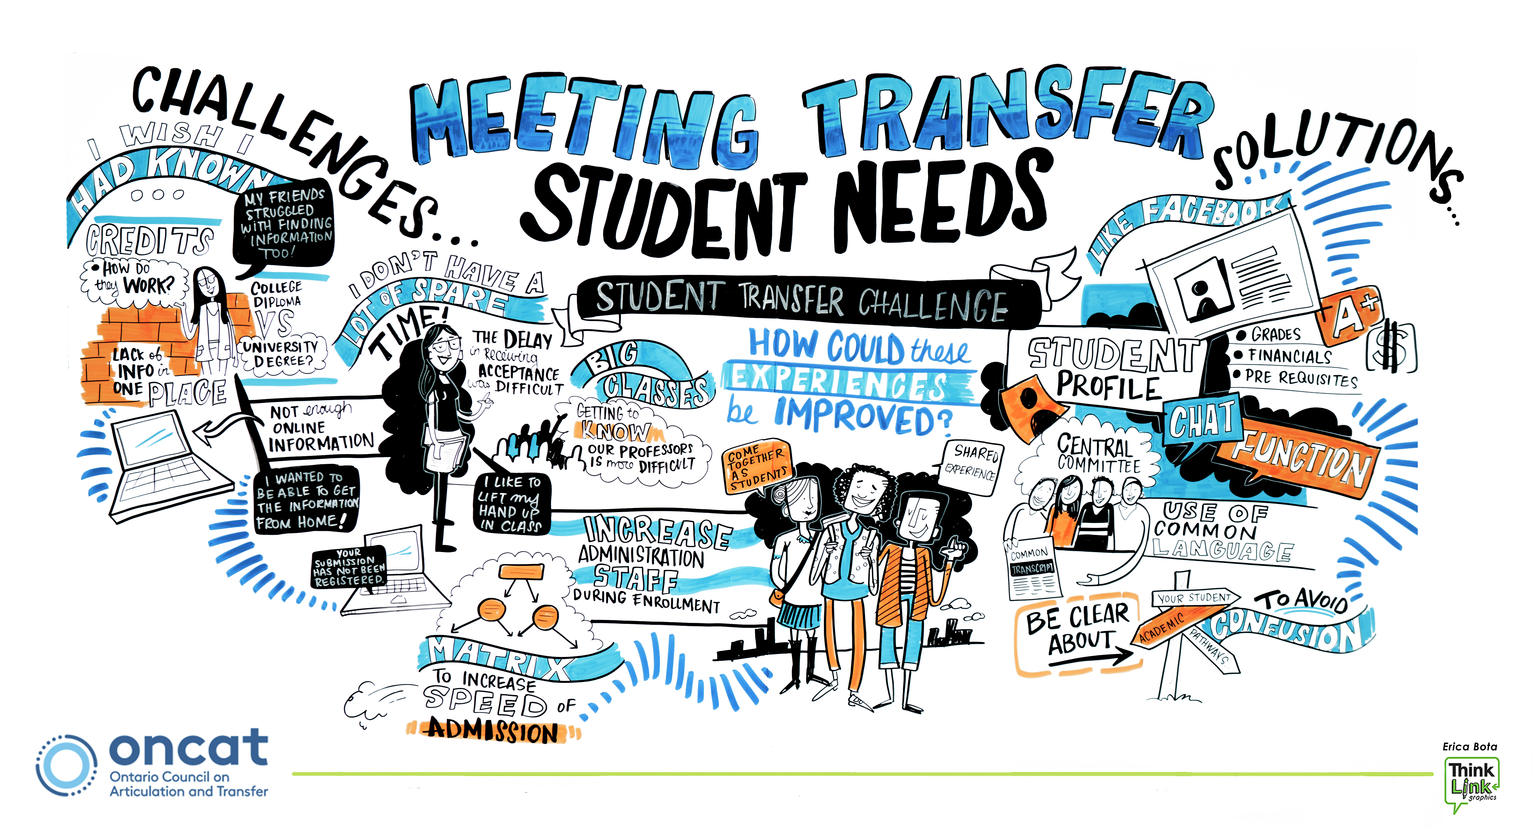 Meeting Transfer Students Needs - Graphic Recording